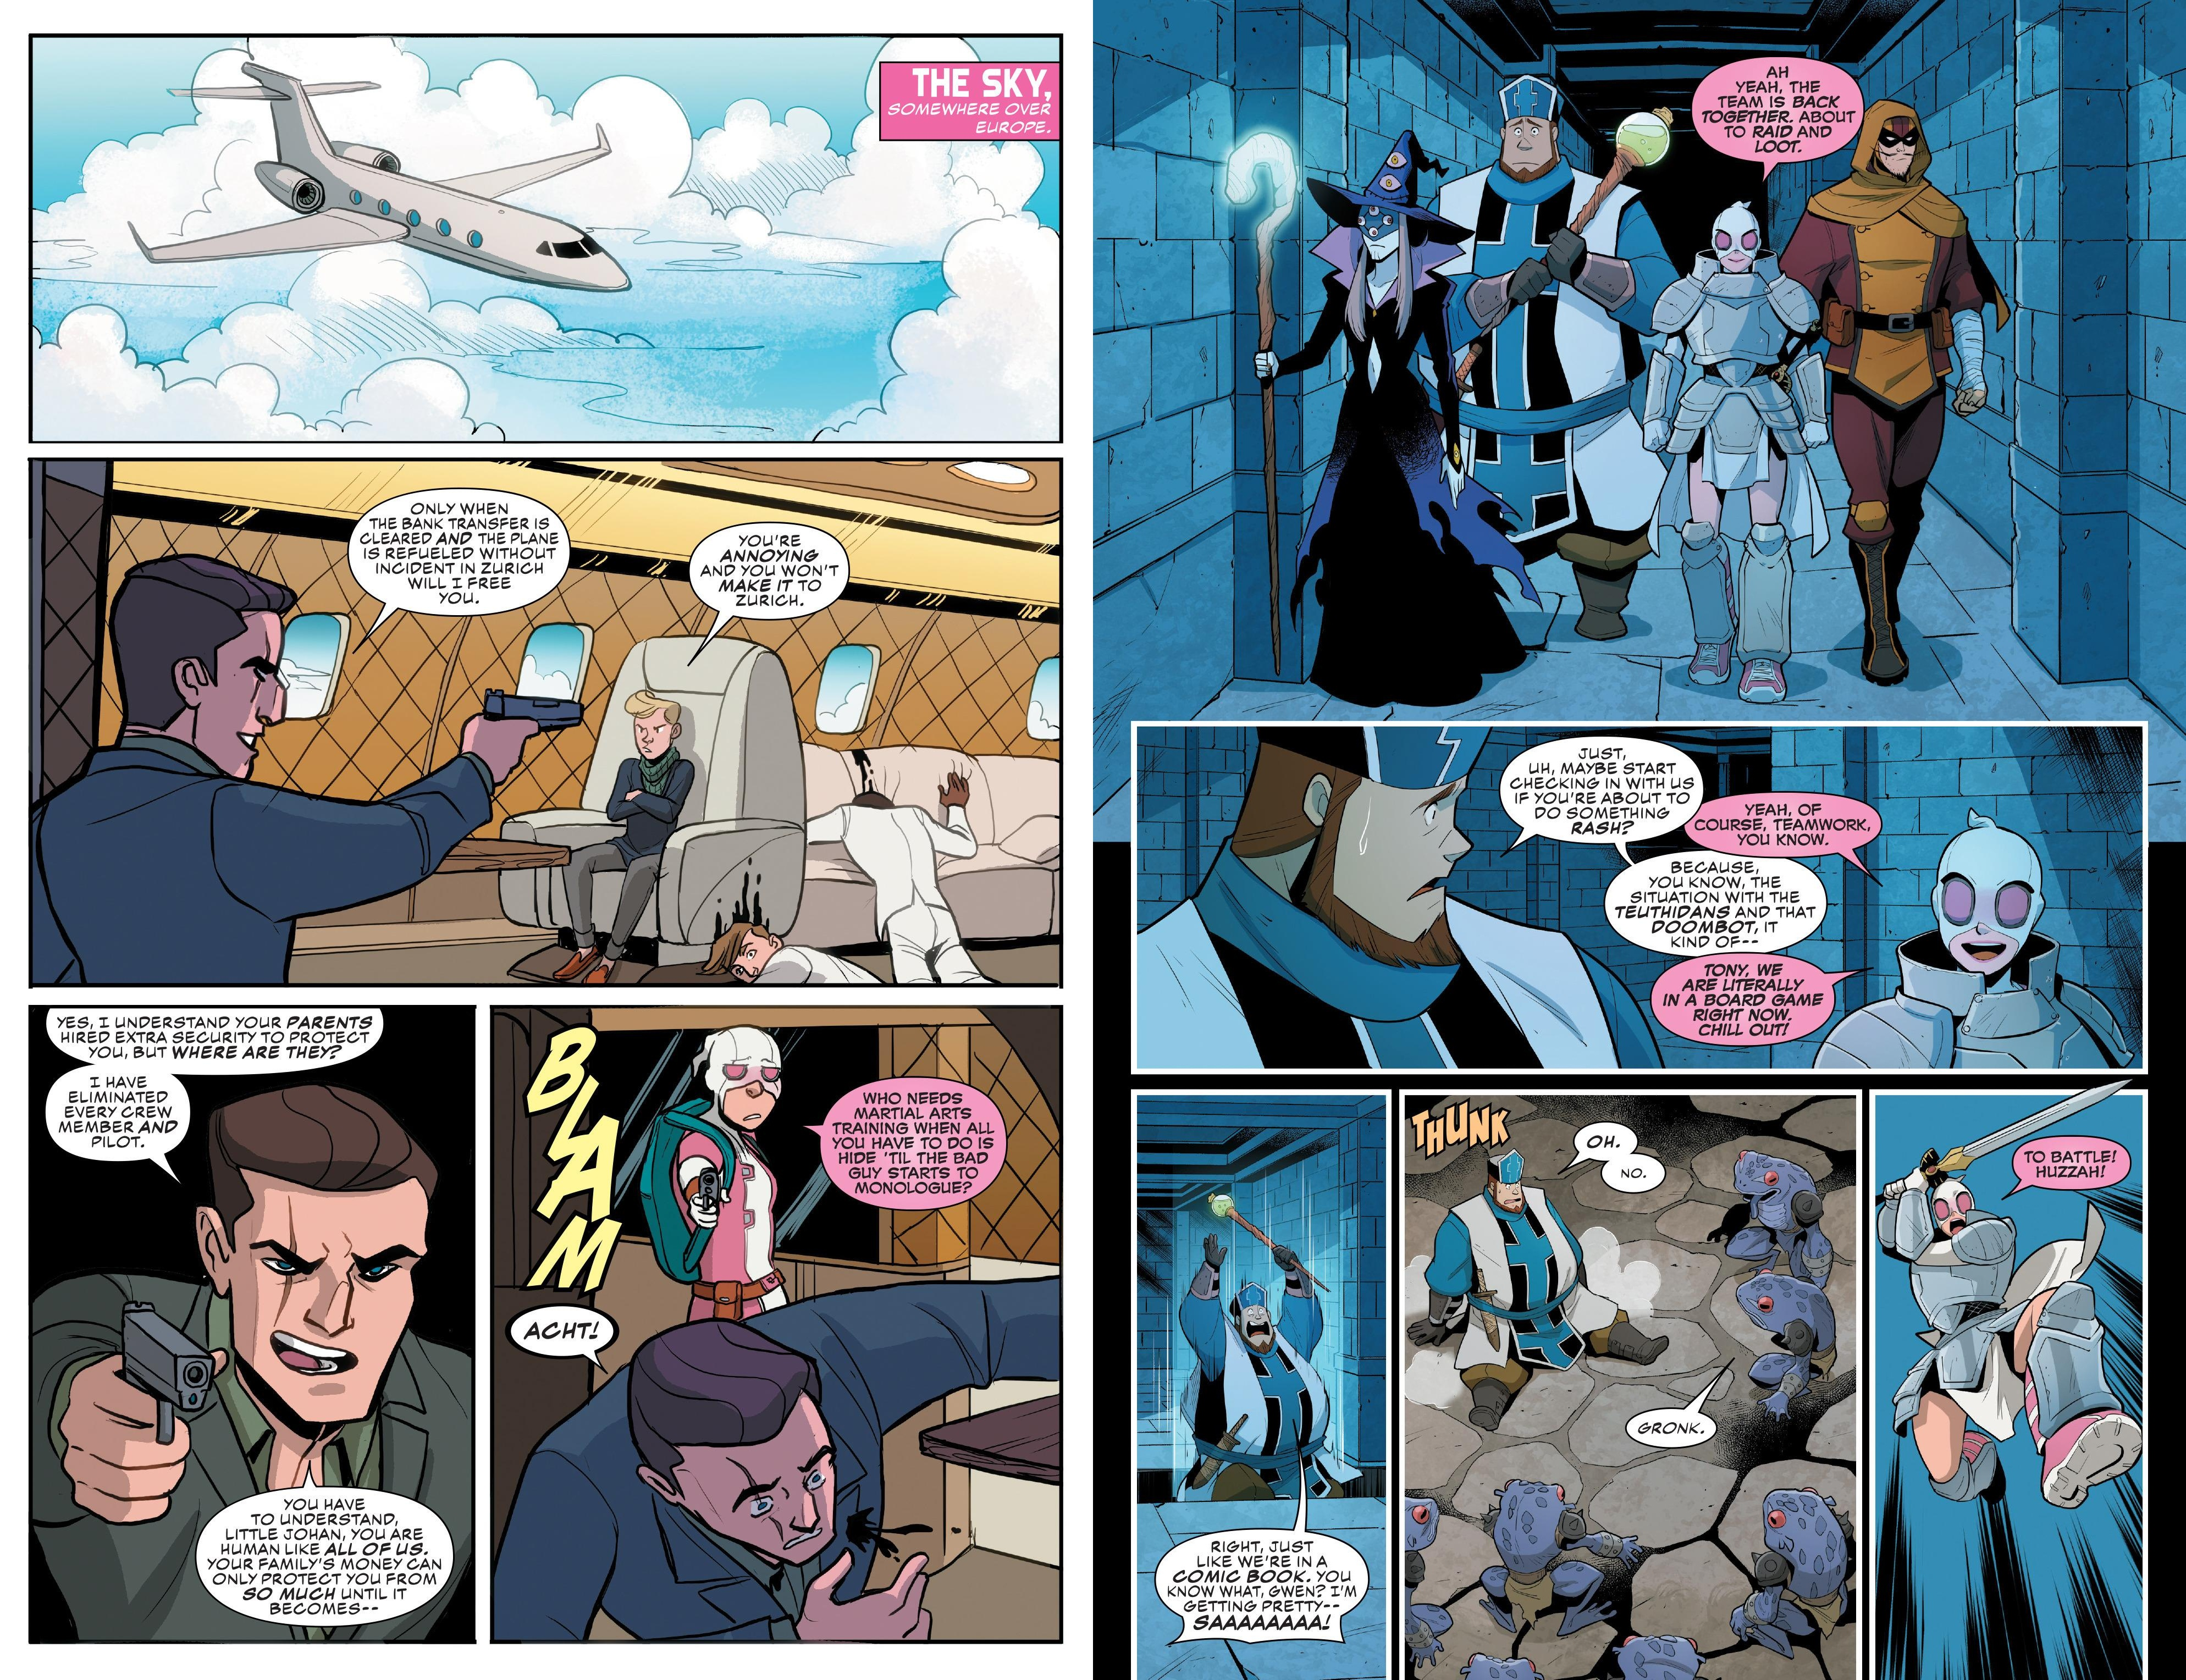 Gwenpool V3 Totally in Continuity review